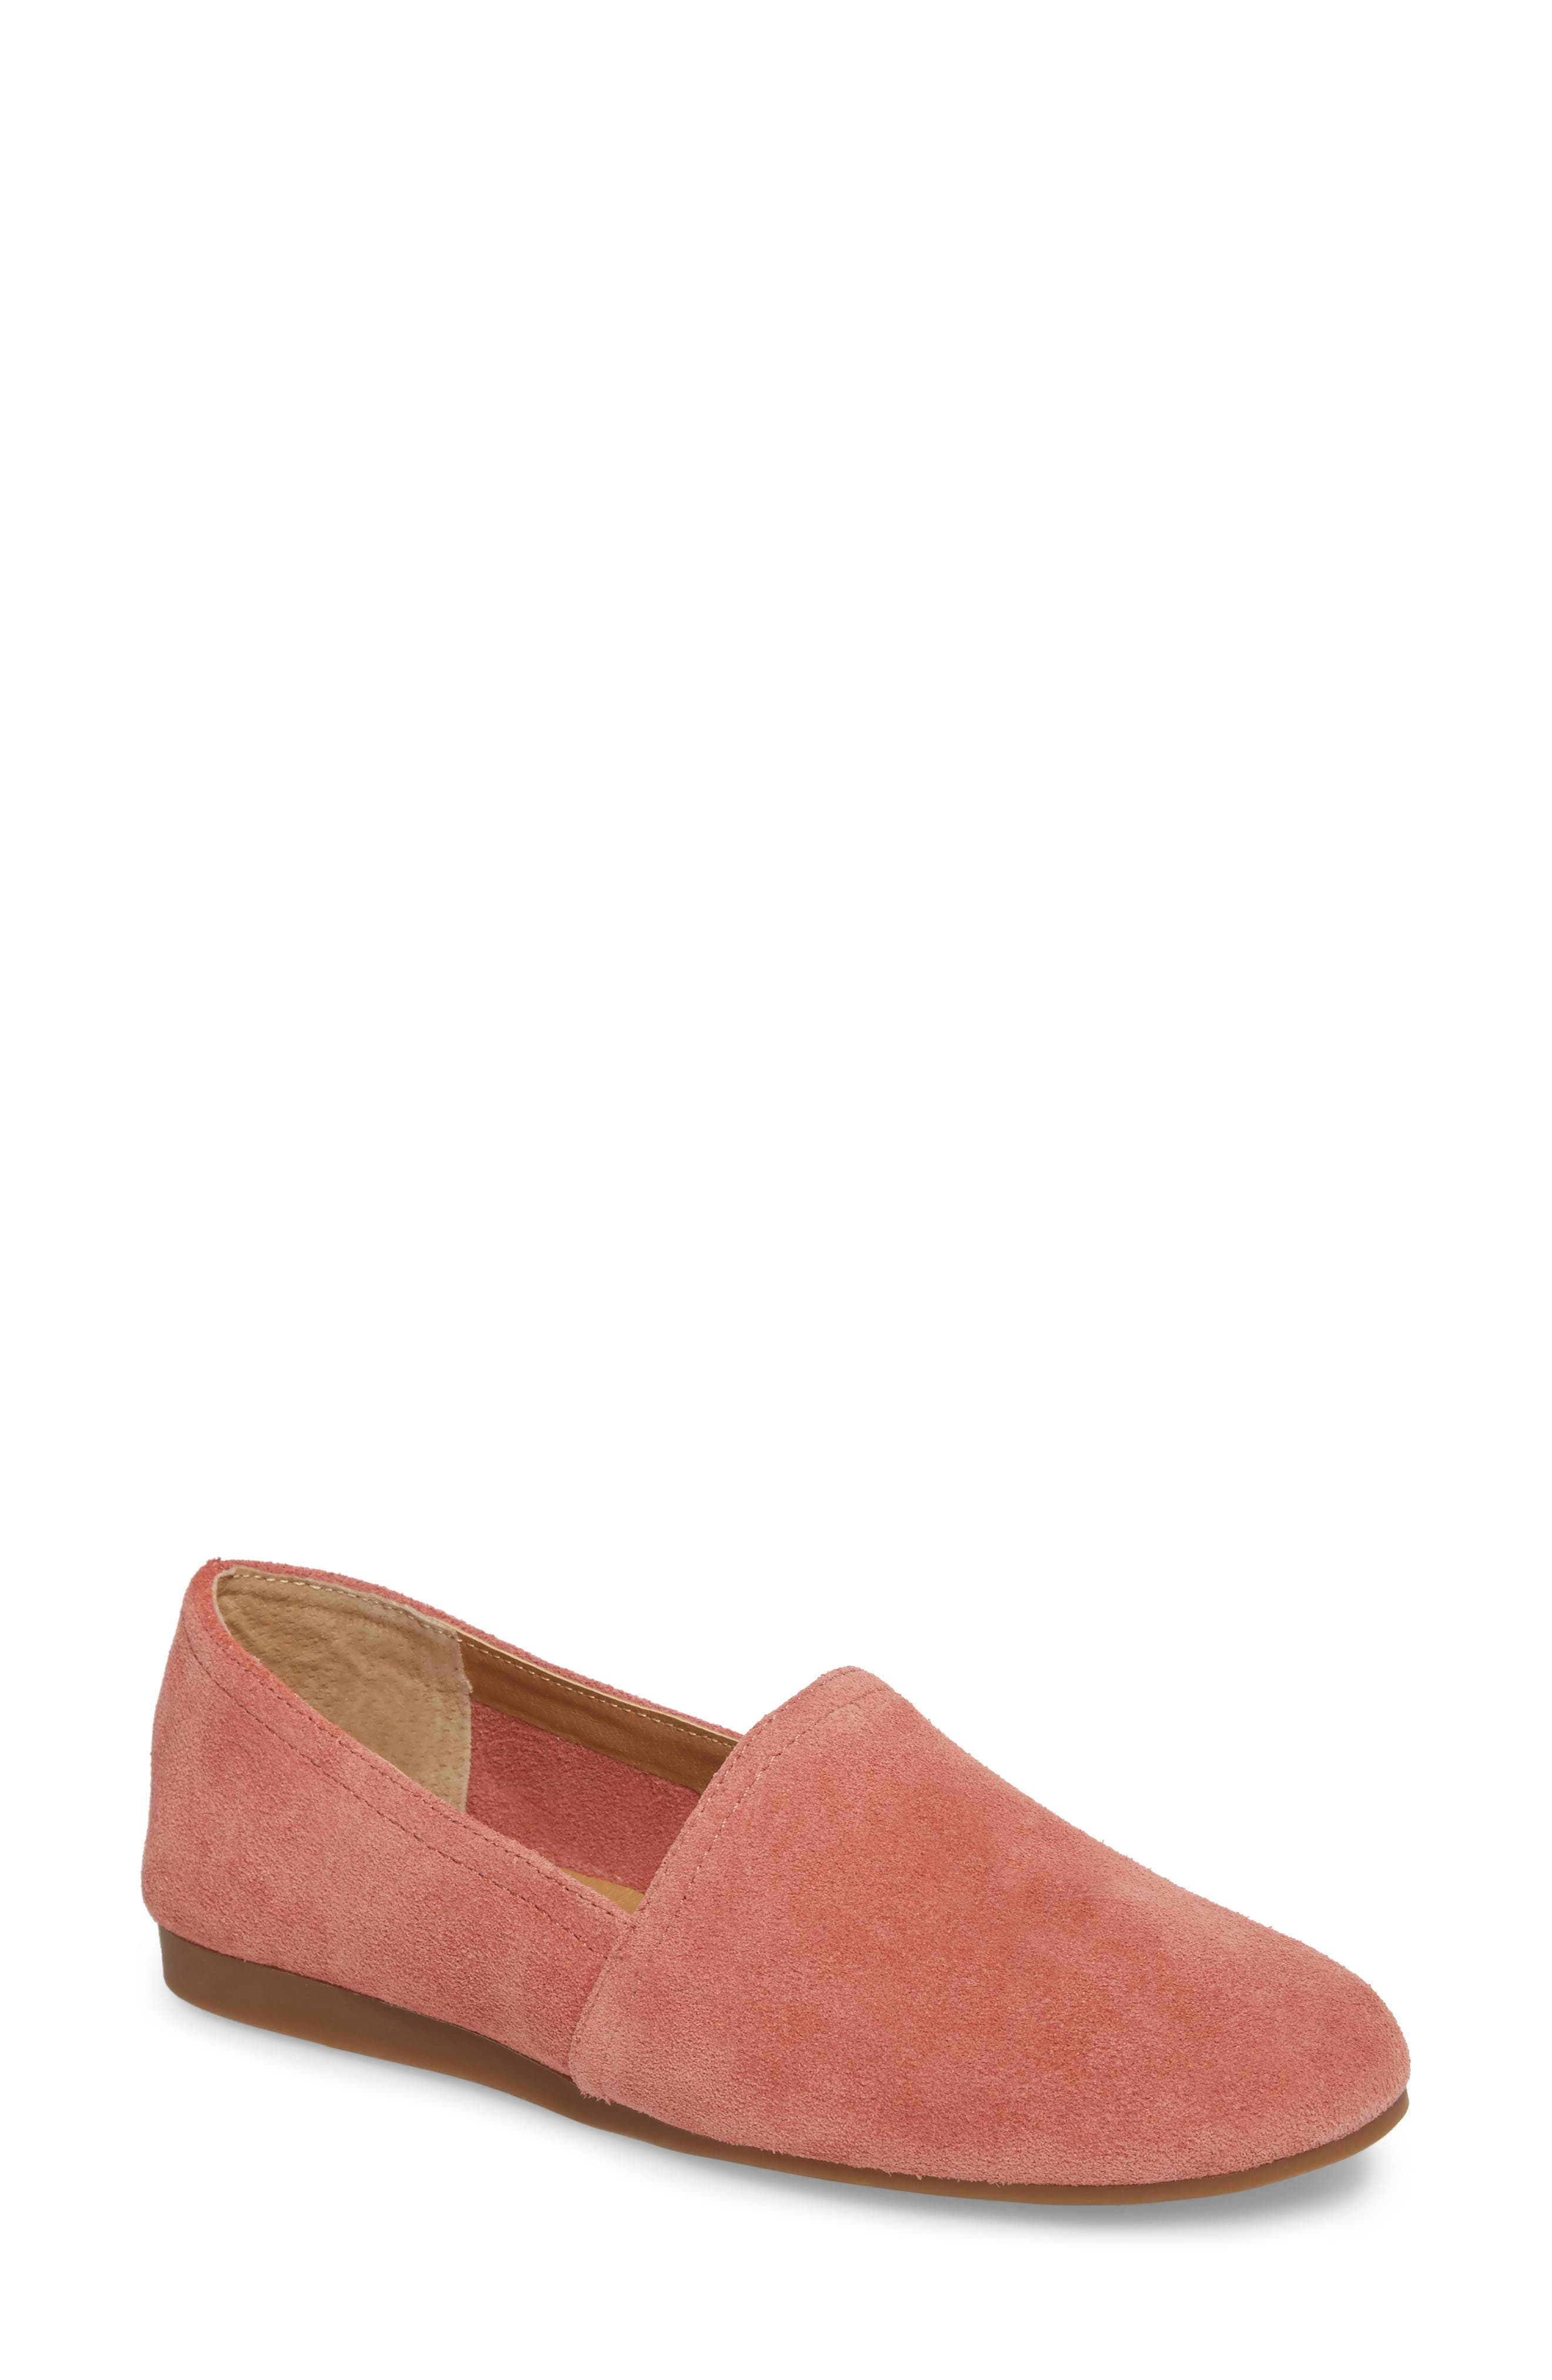 Brettany Loafer,                         Main,                         color, Canyon Rose Suede